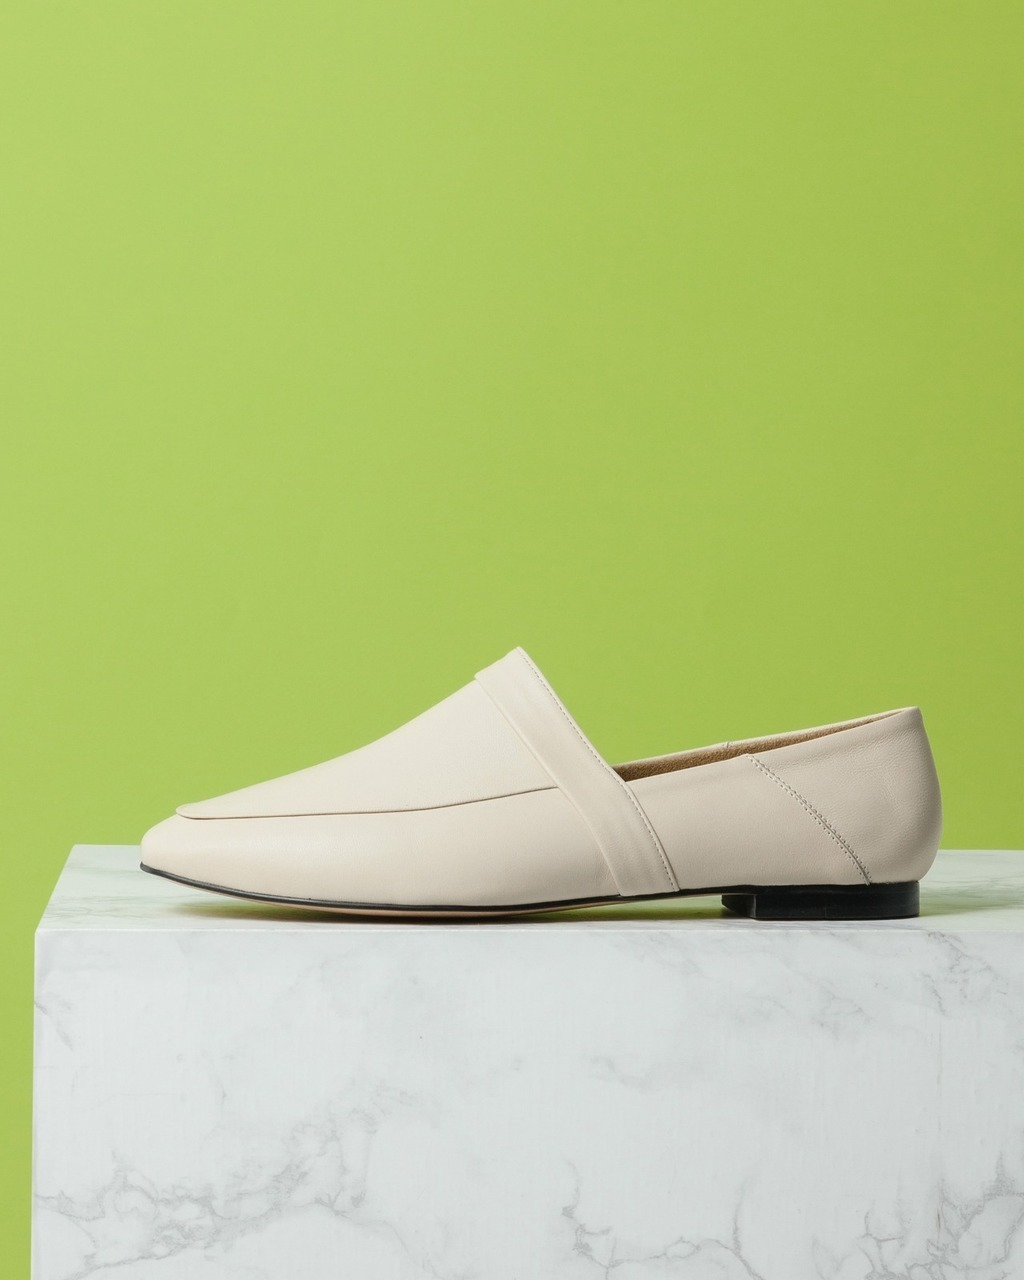 DORATORE Monti Cream - Women's Shoes : Republic of Korea